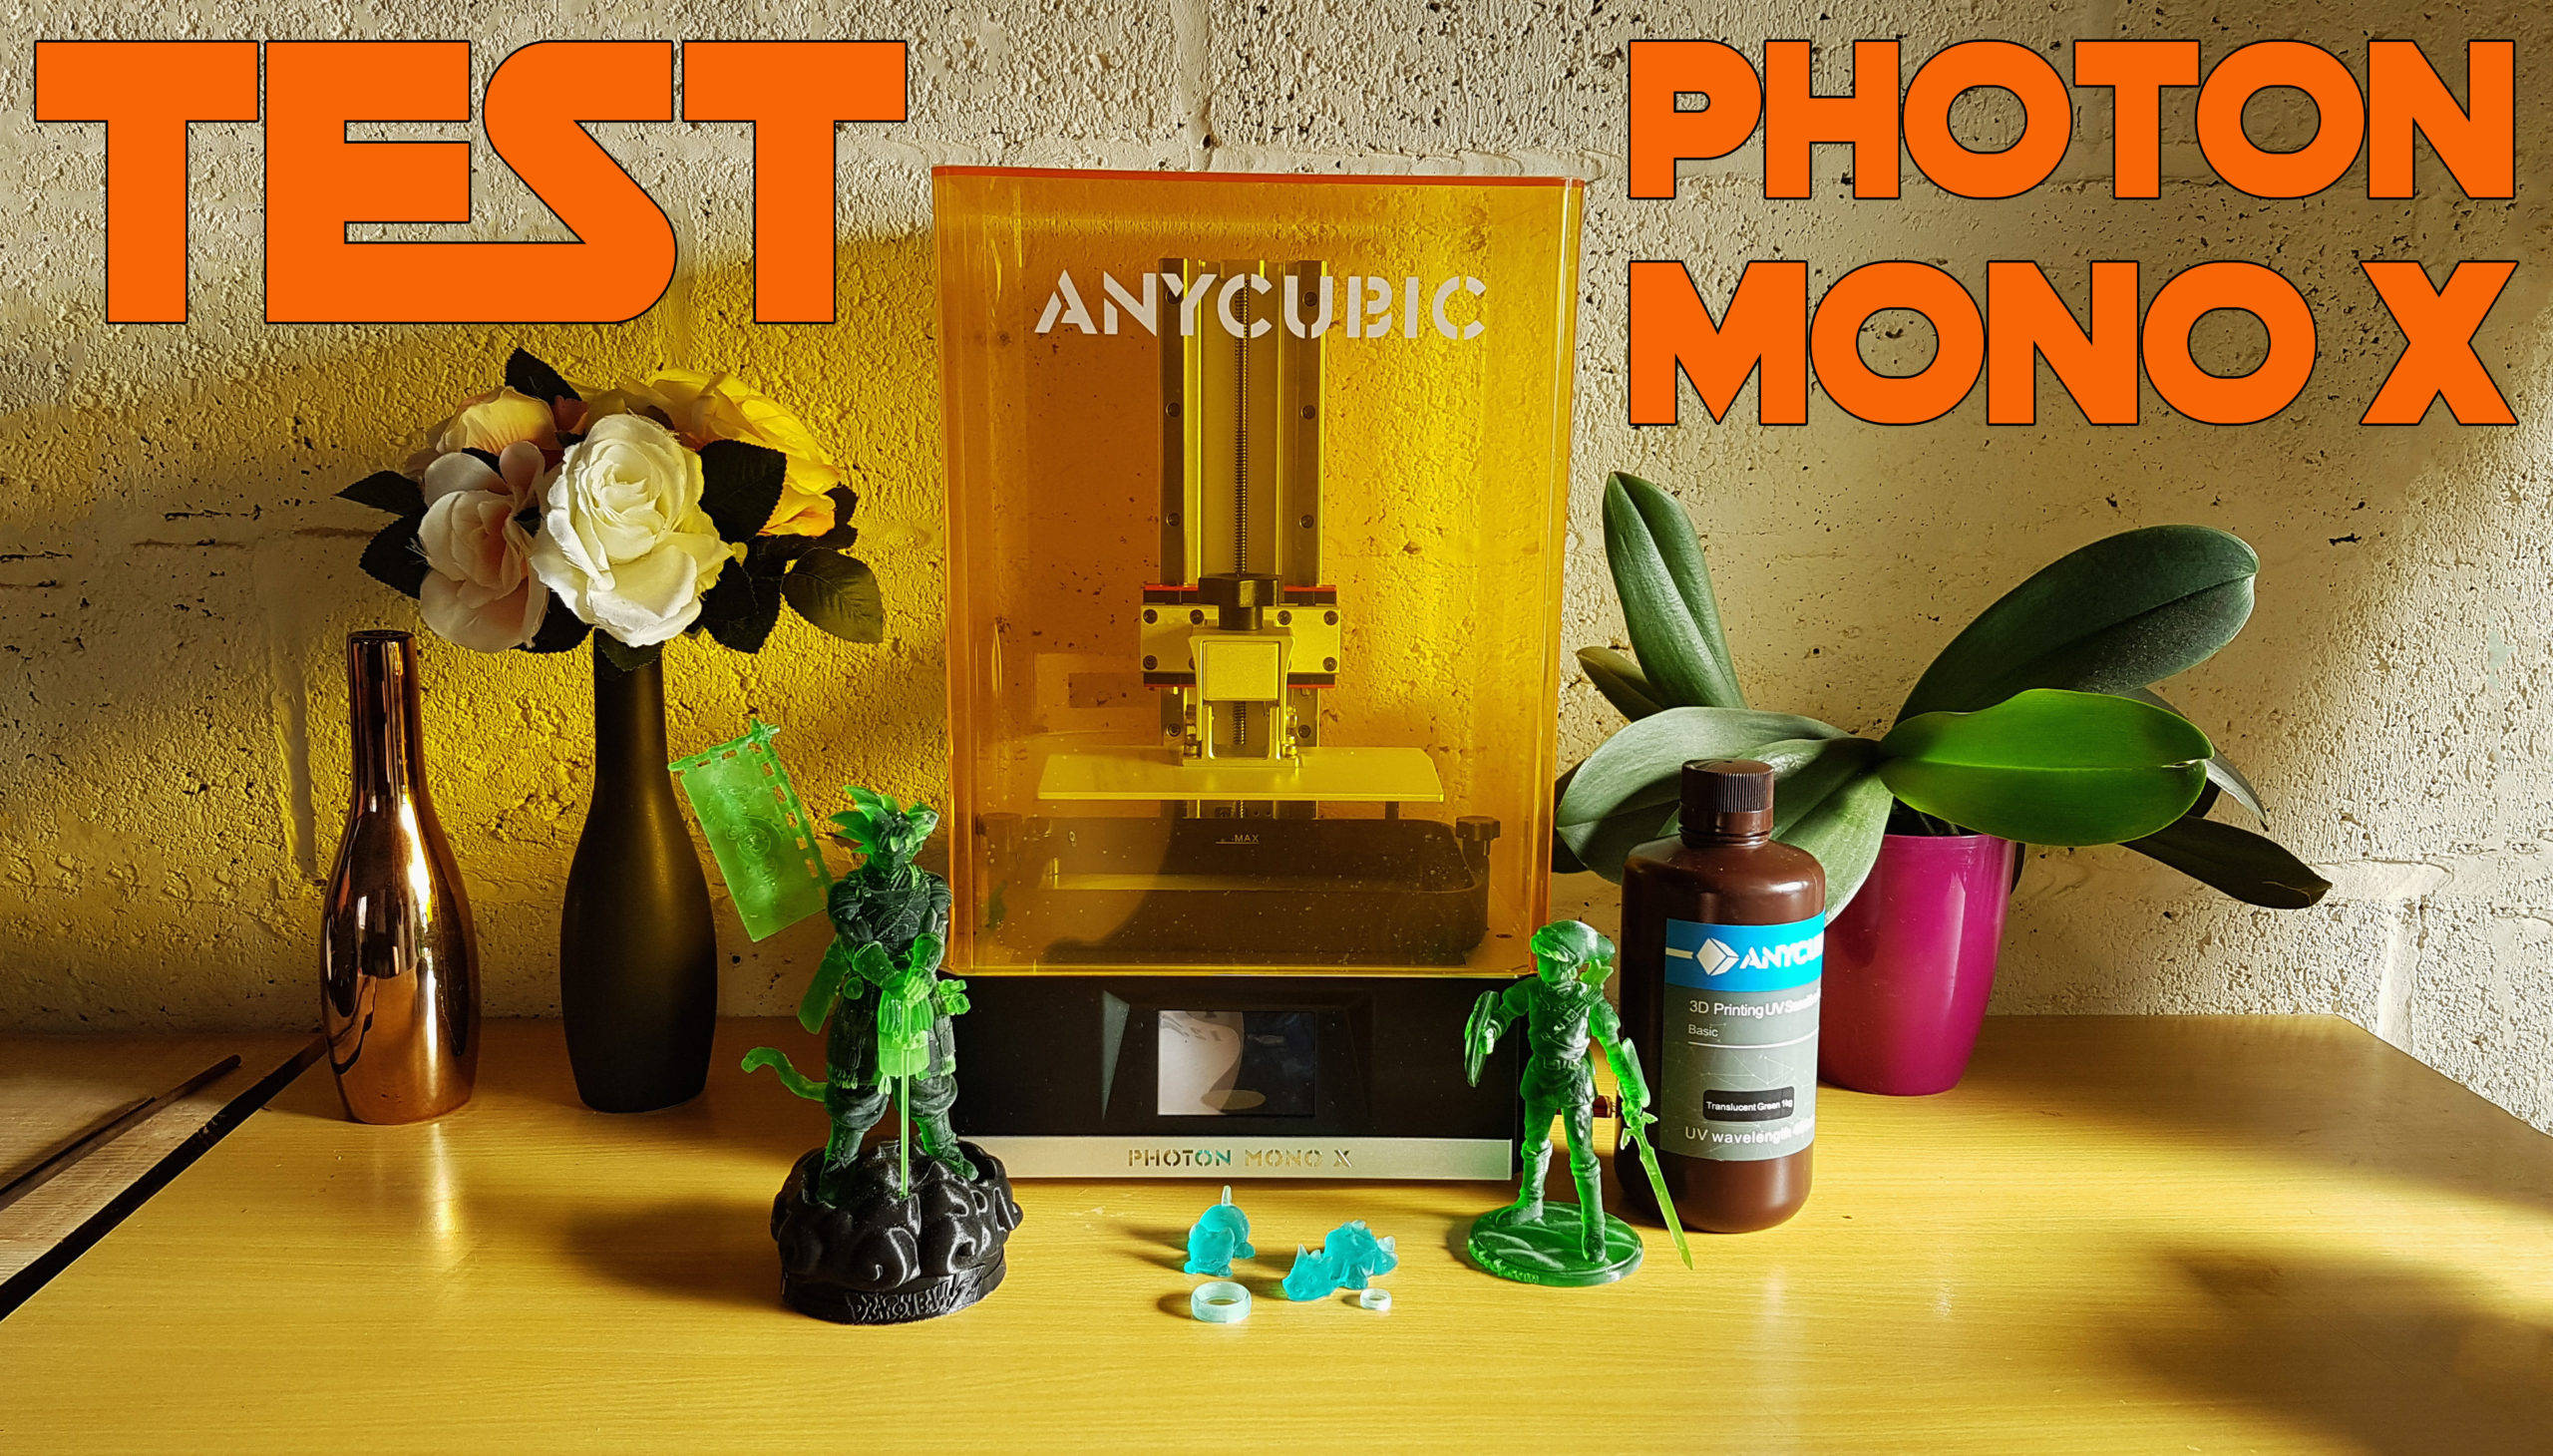 test-anycubic-photon-mono-x-review-scale